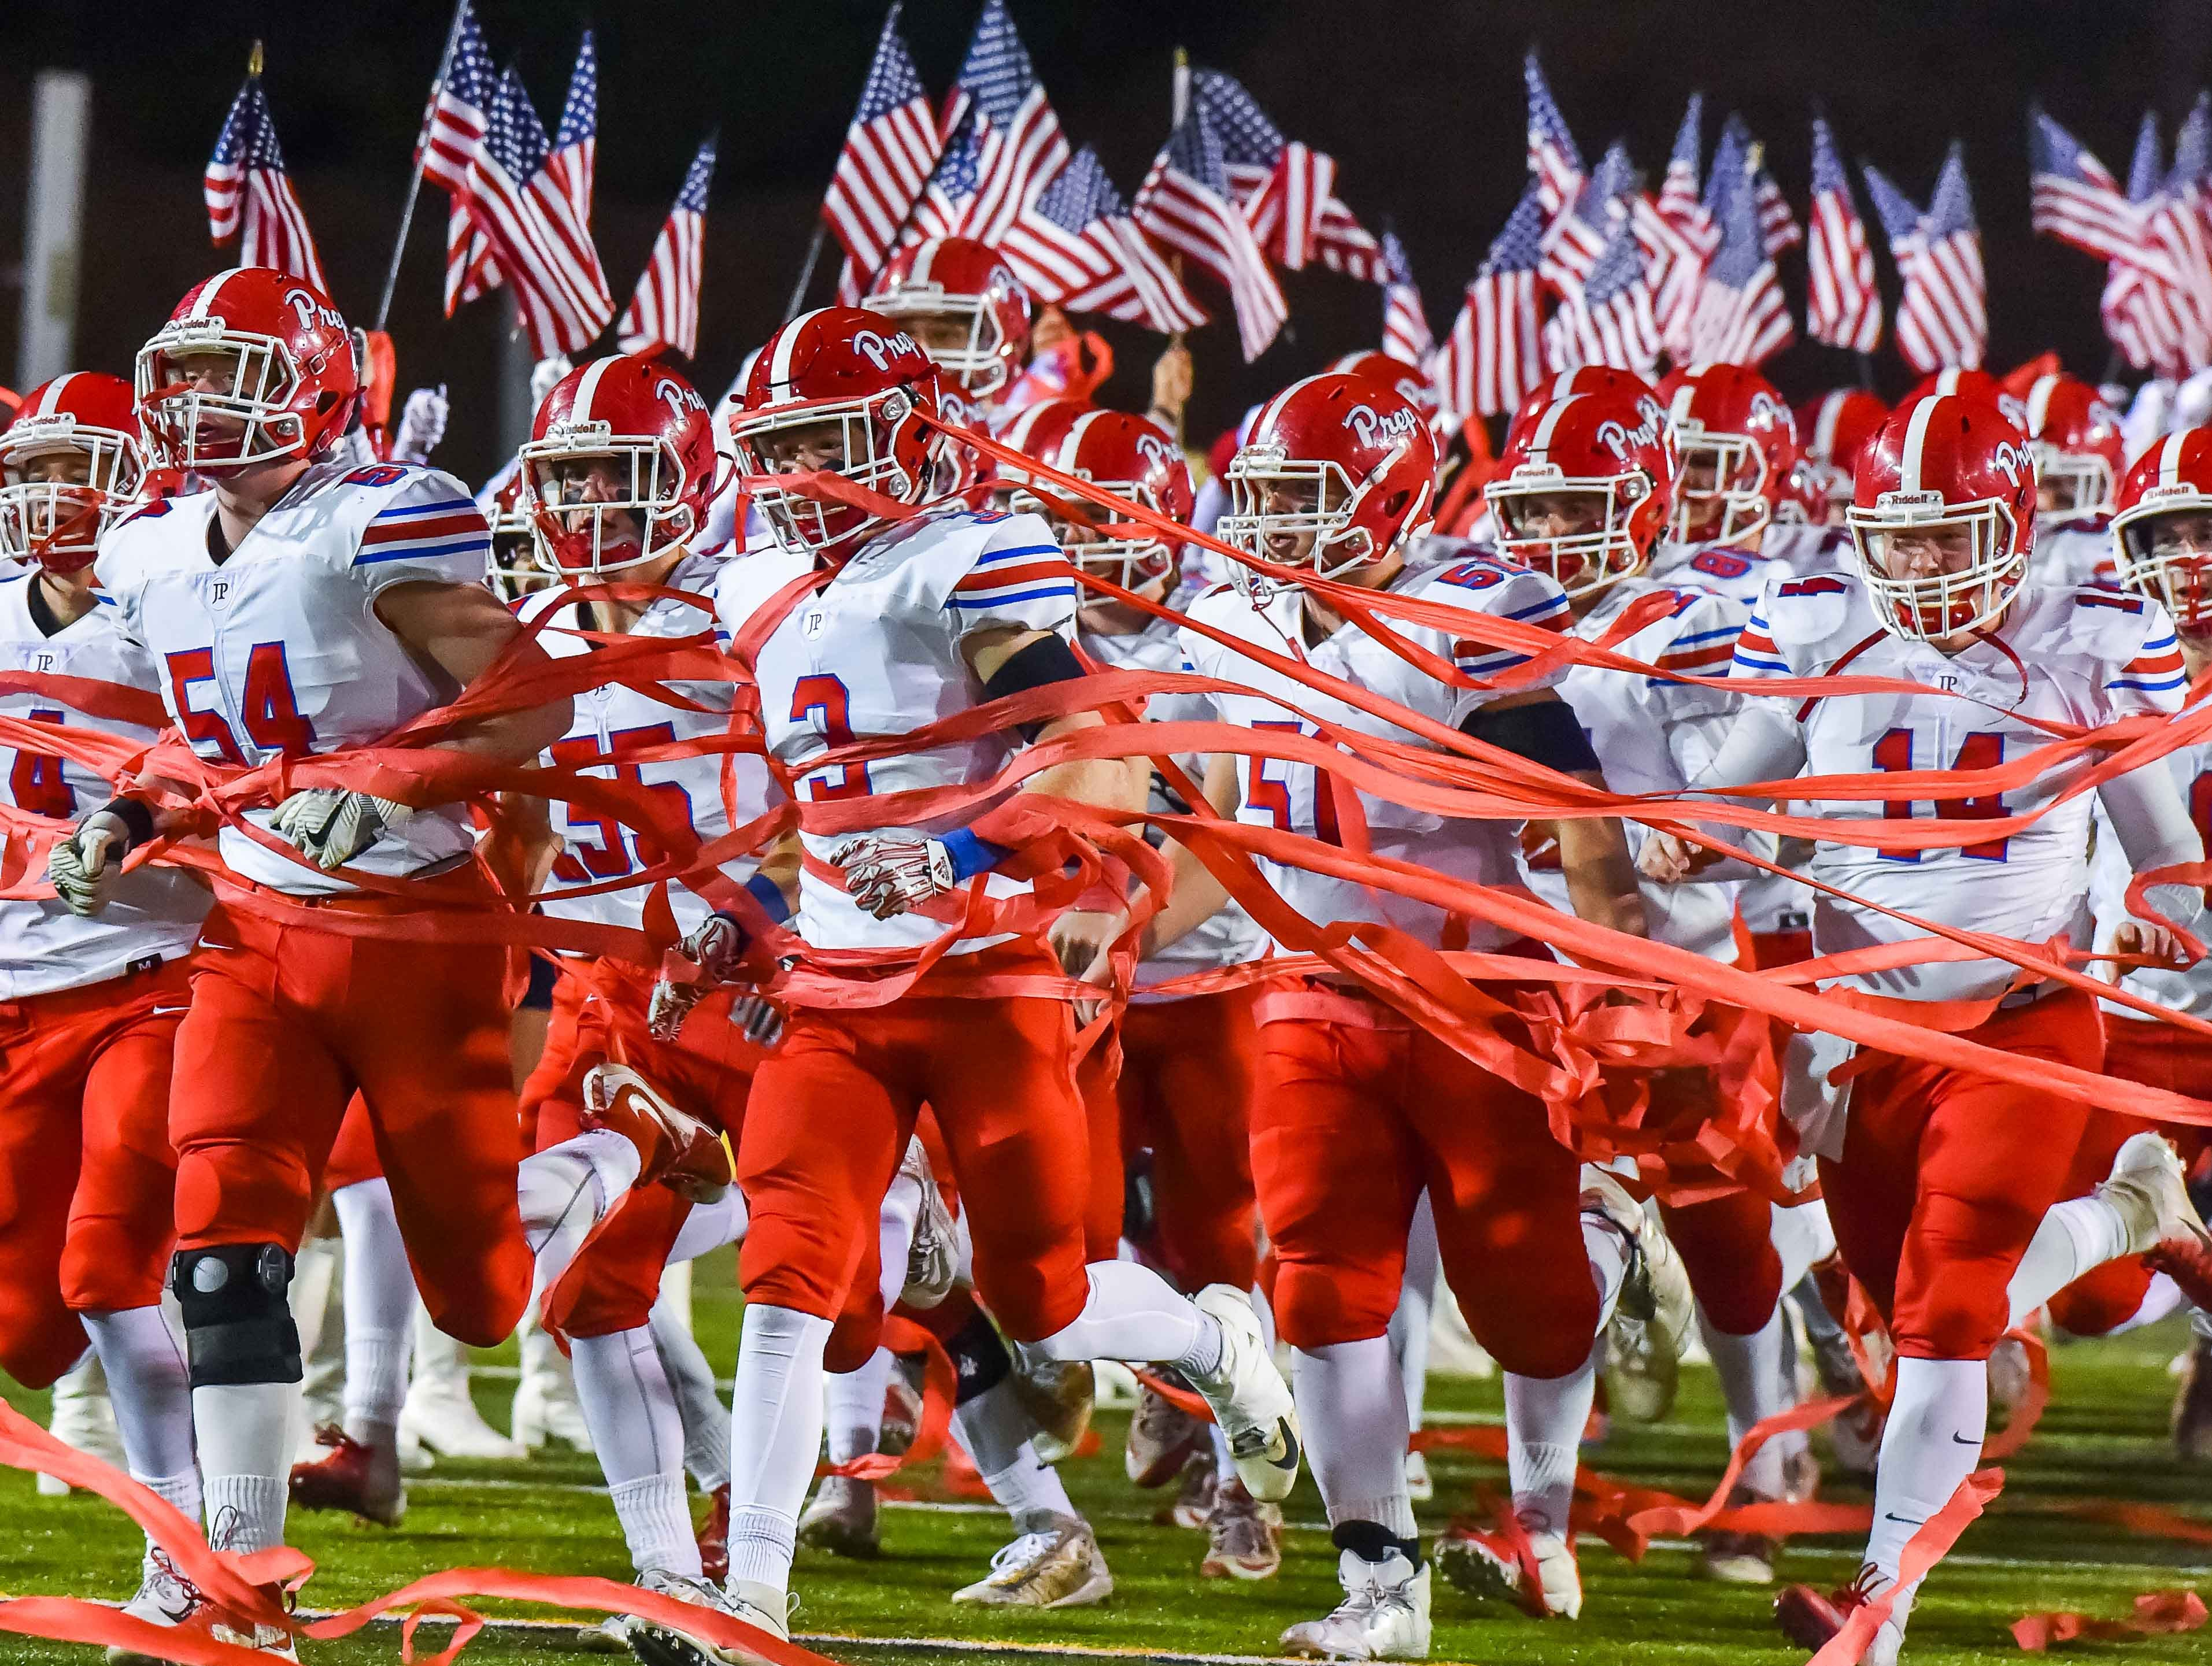 Jackson Prep players enter the field before the MAIS Class AAAA Championship Football game held at Jackson Academy in Jackson, MS, Thursday November 16, 2018.(Bob Smith-For The Clarion Ledger)